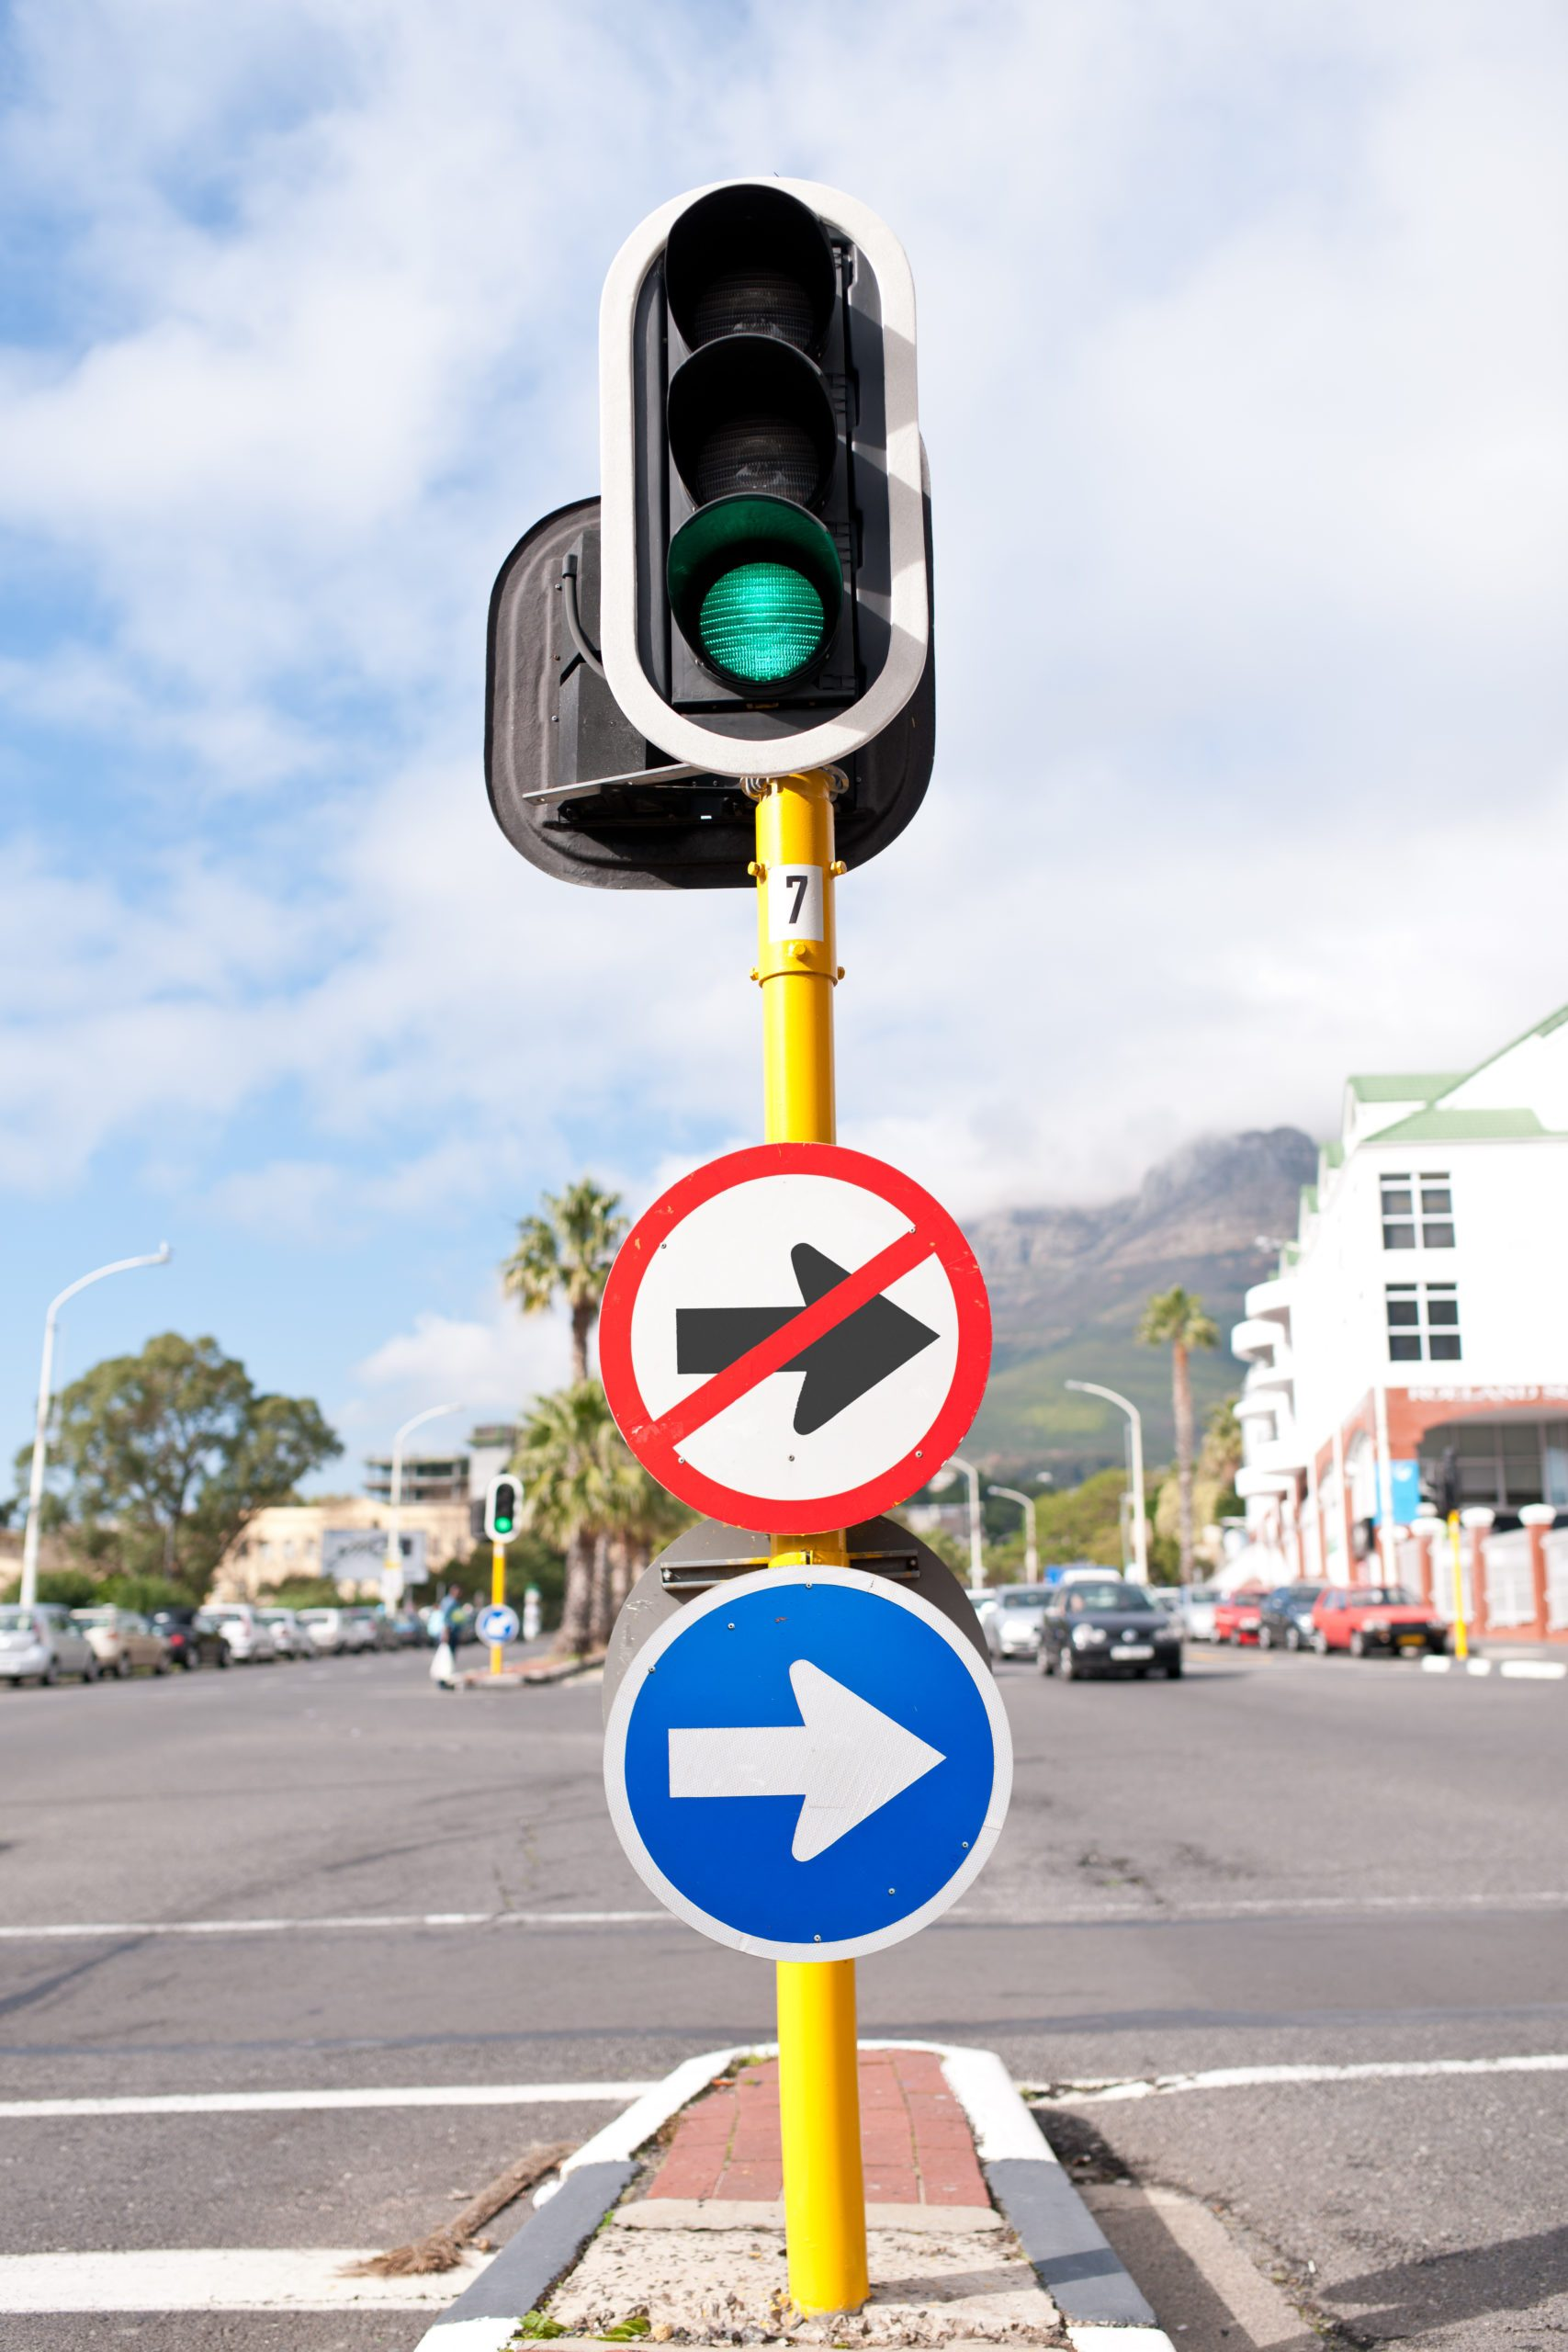 To turn right or not to turn